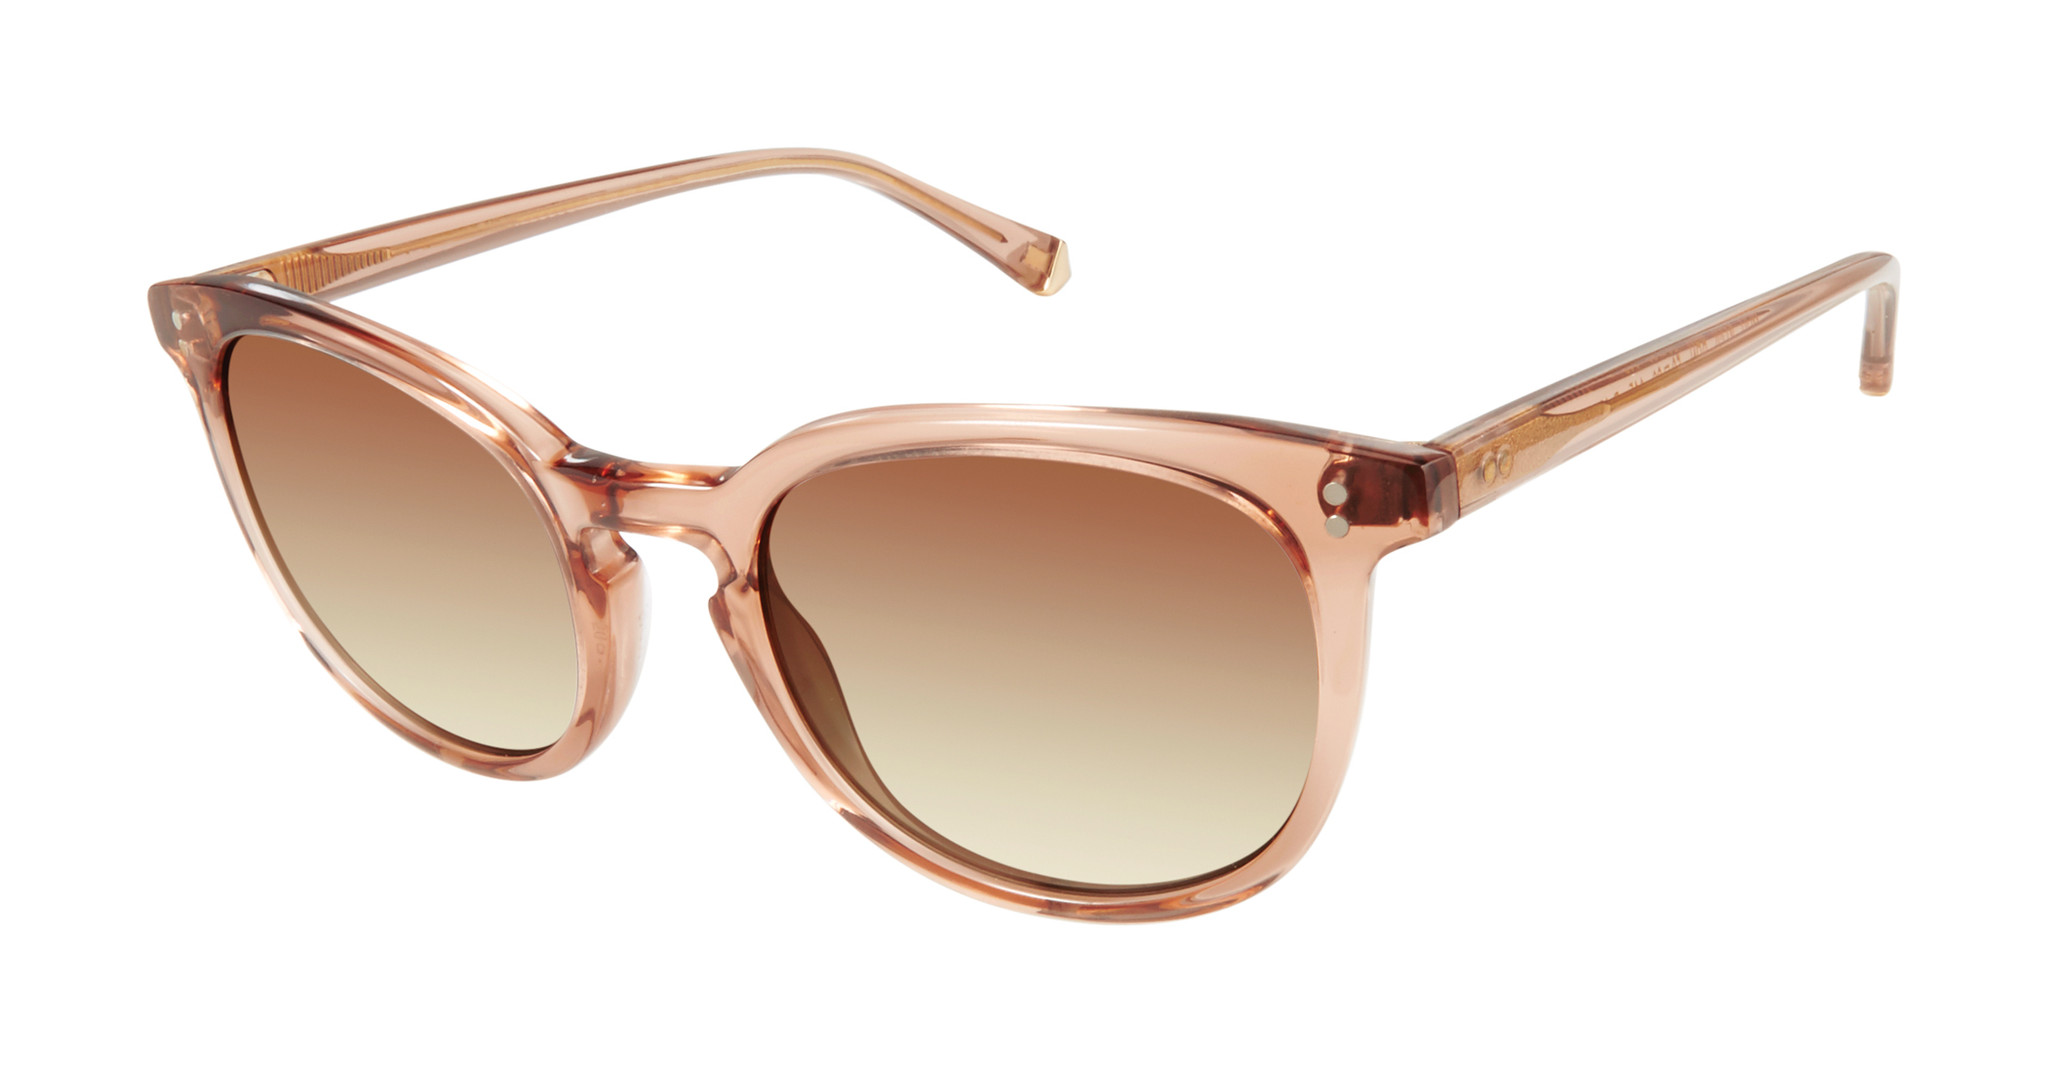 Kate Young for Tura, Nadia frame, Kate Young Suns, Kate Young Sunglasses, Kate Young Eyewear